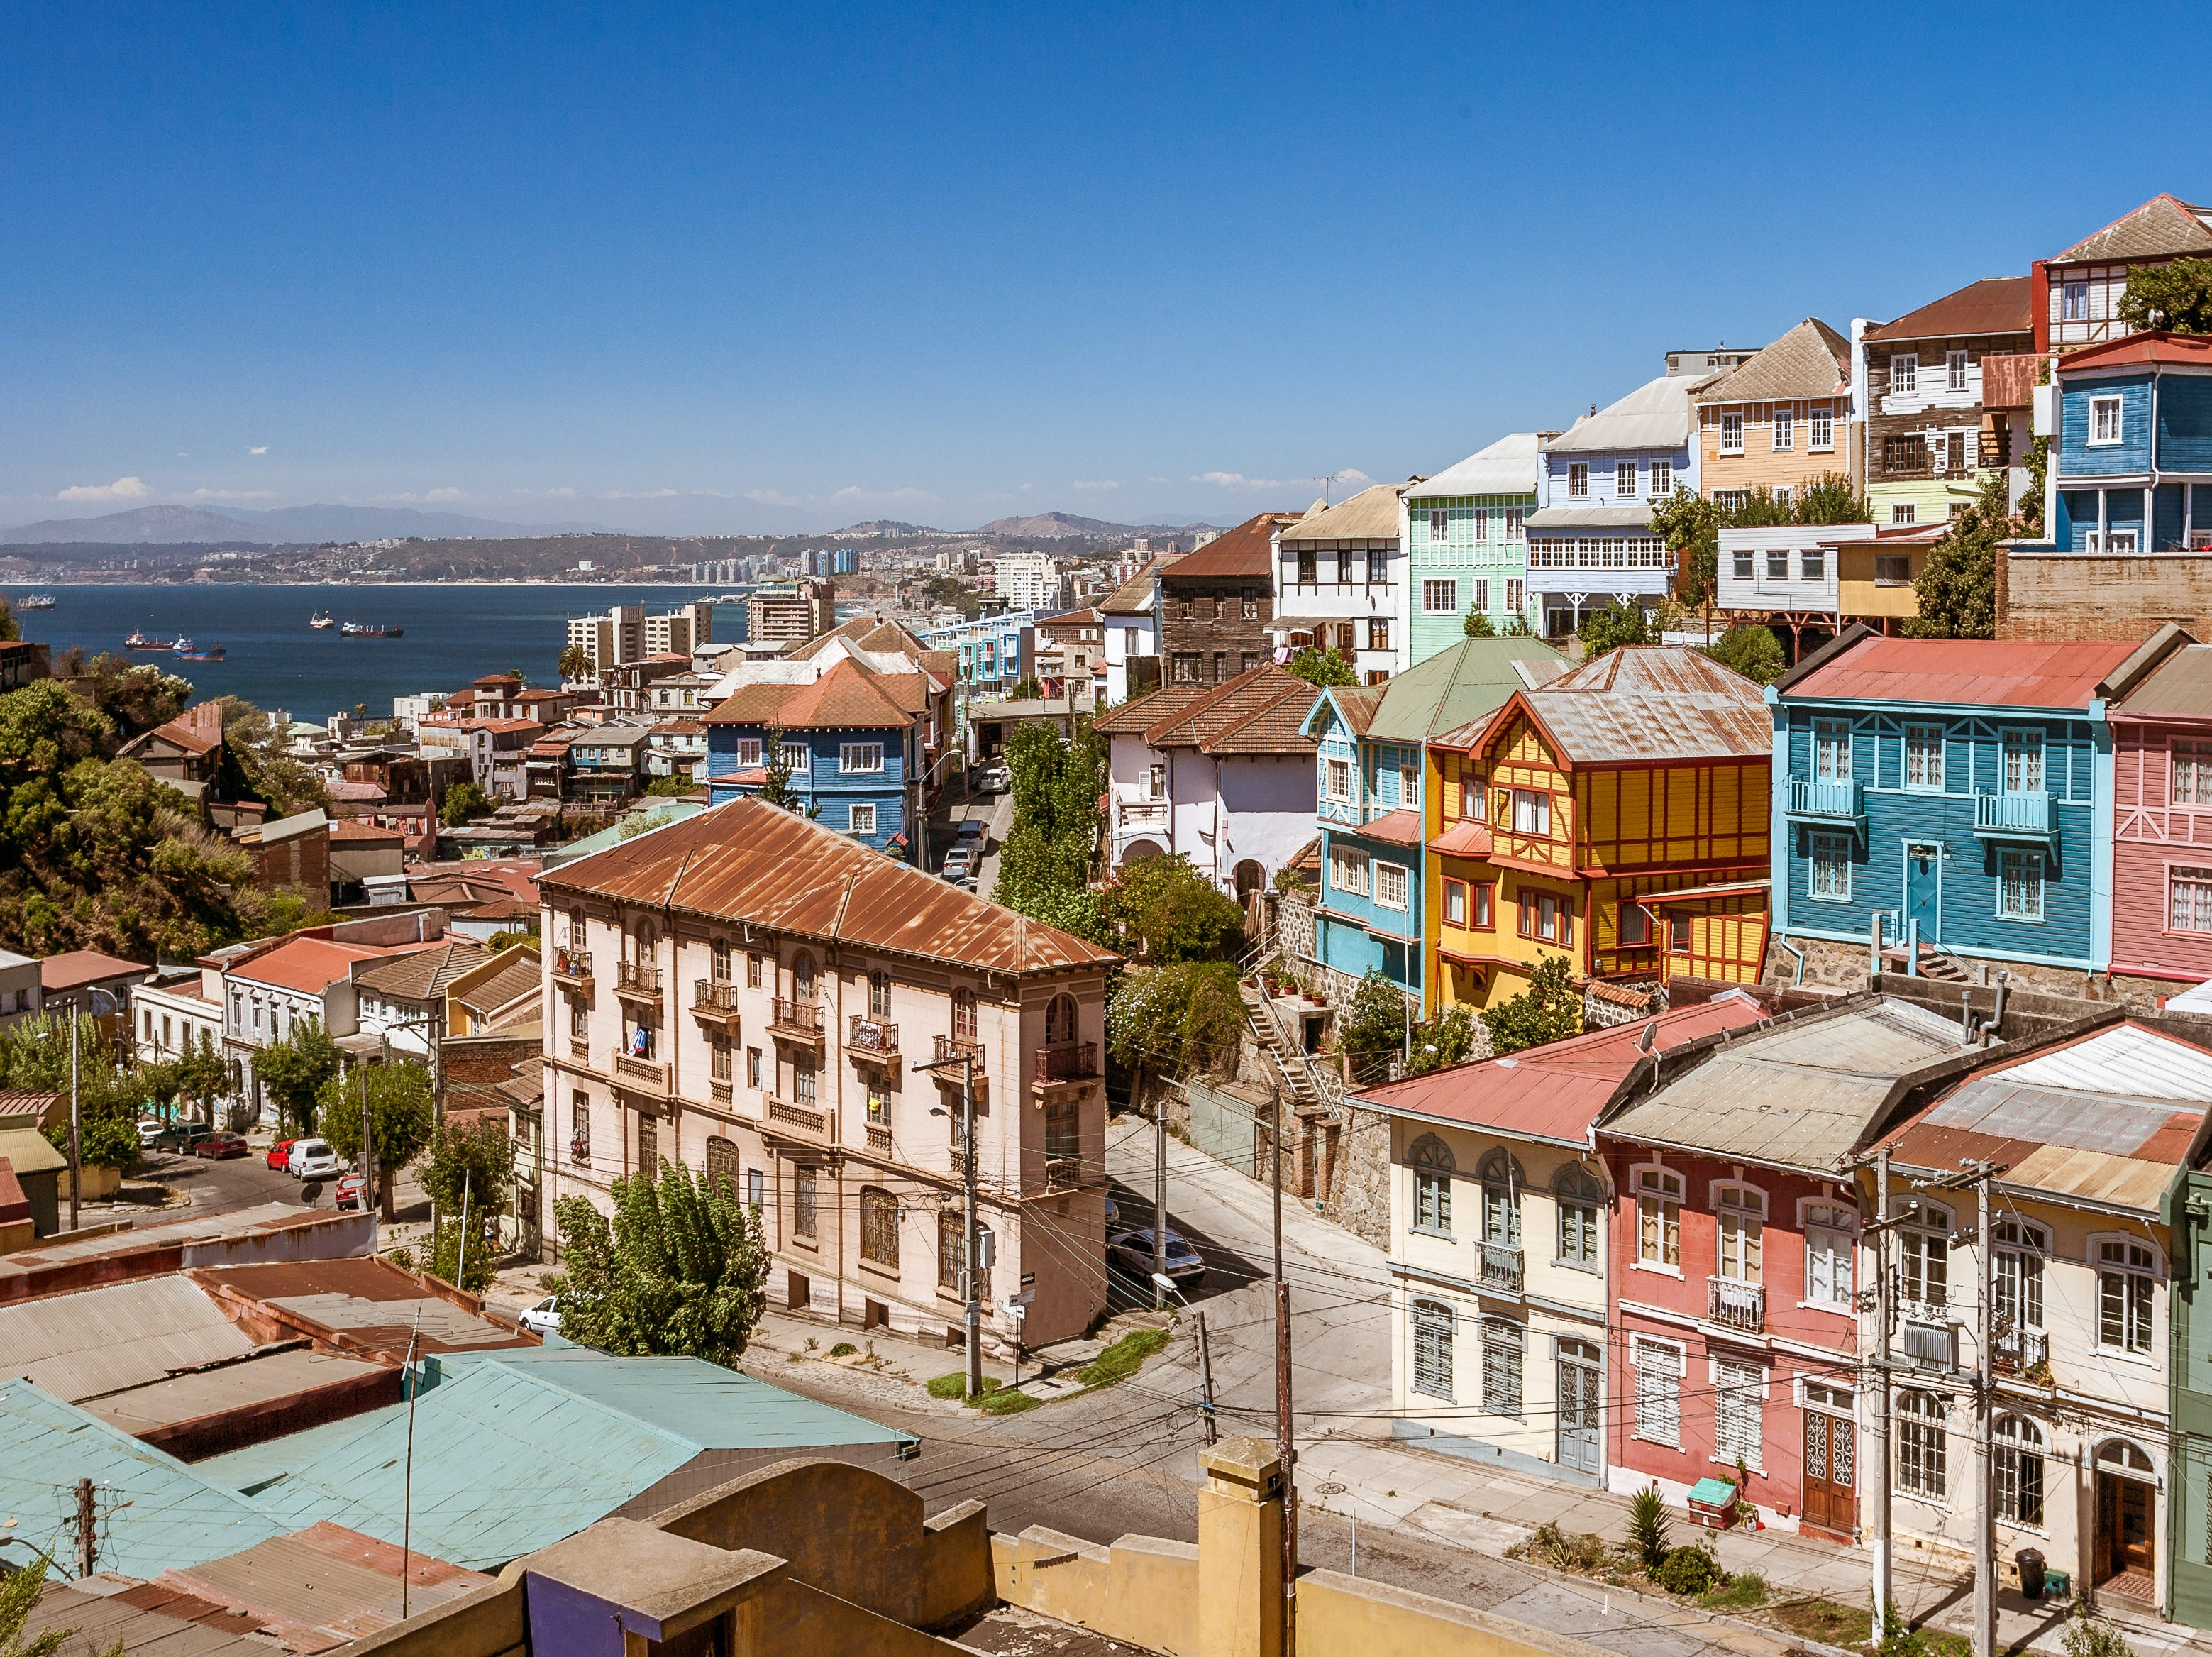 No. 9: Chile, $196/square foot ($16,588 local salary buys a 254 sq. ft. dwelling).